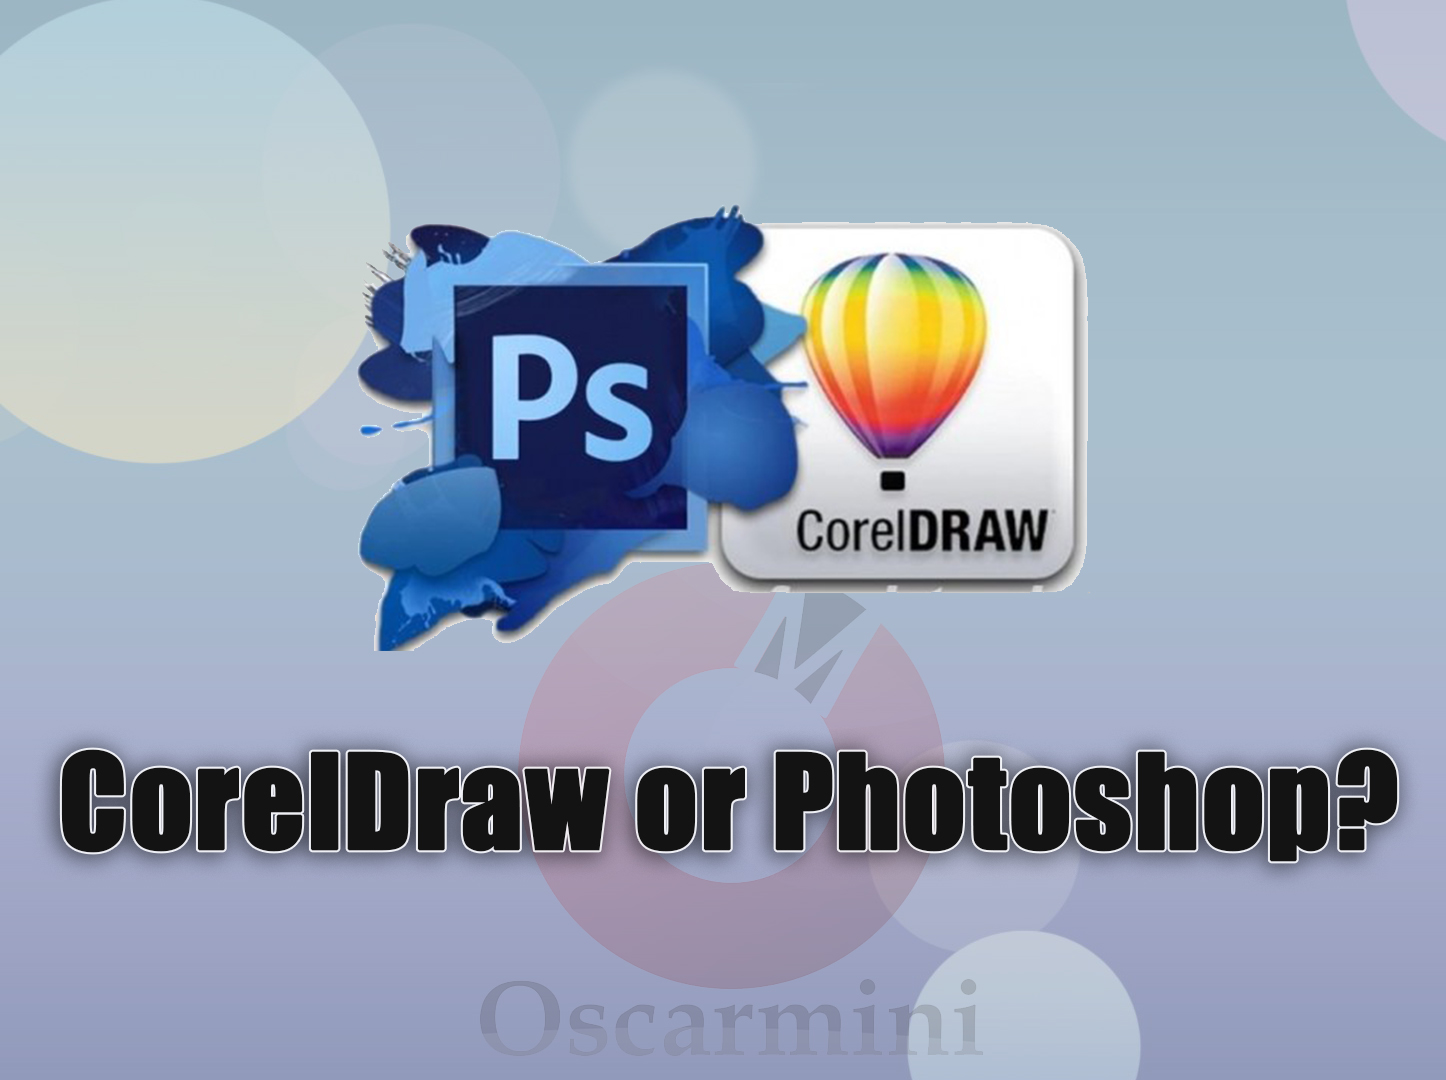 Corel Draw vs Adobe Photoshop